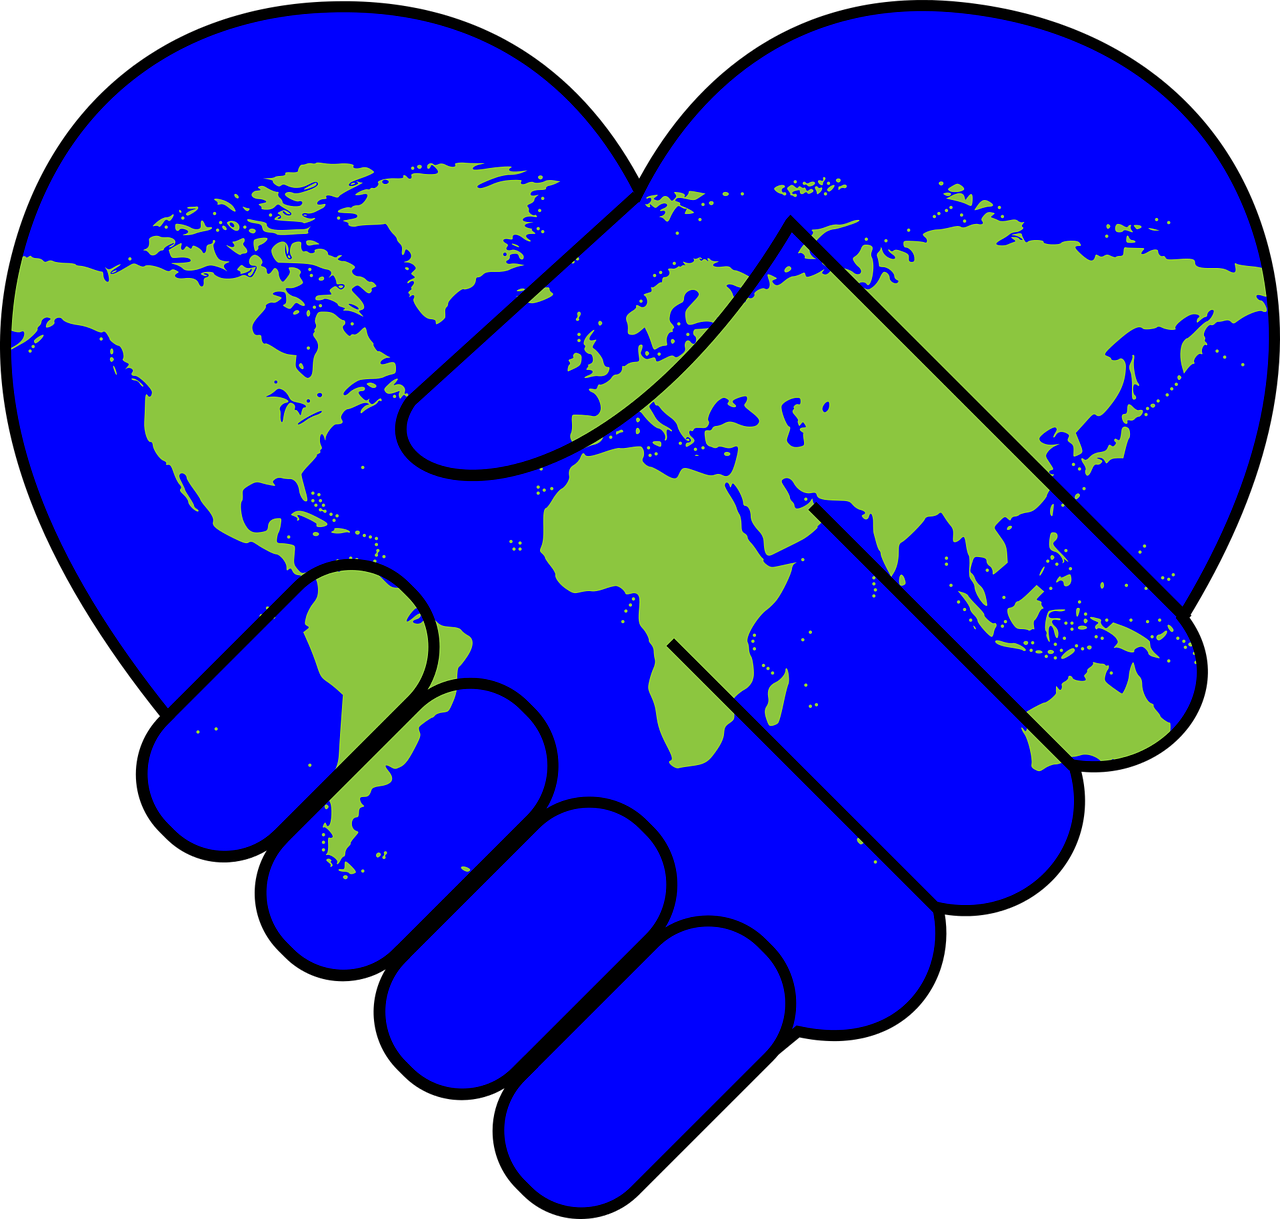 Kindness clipart social work. We need more love